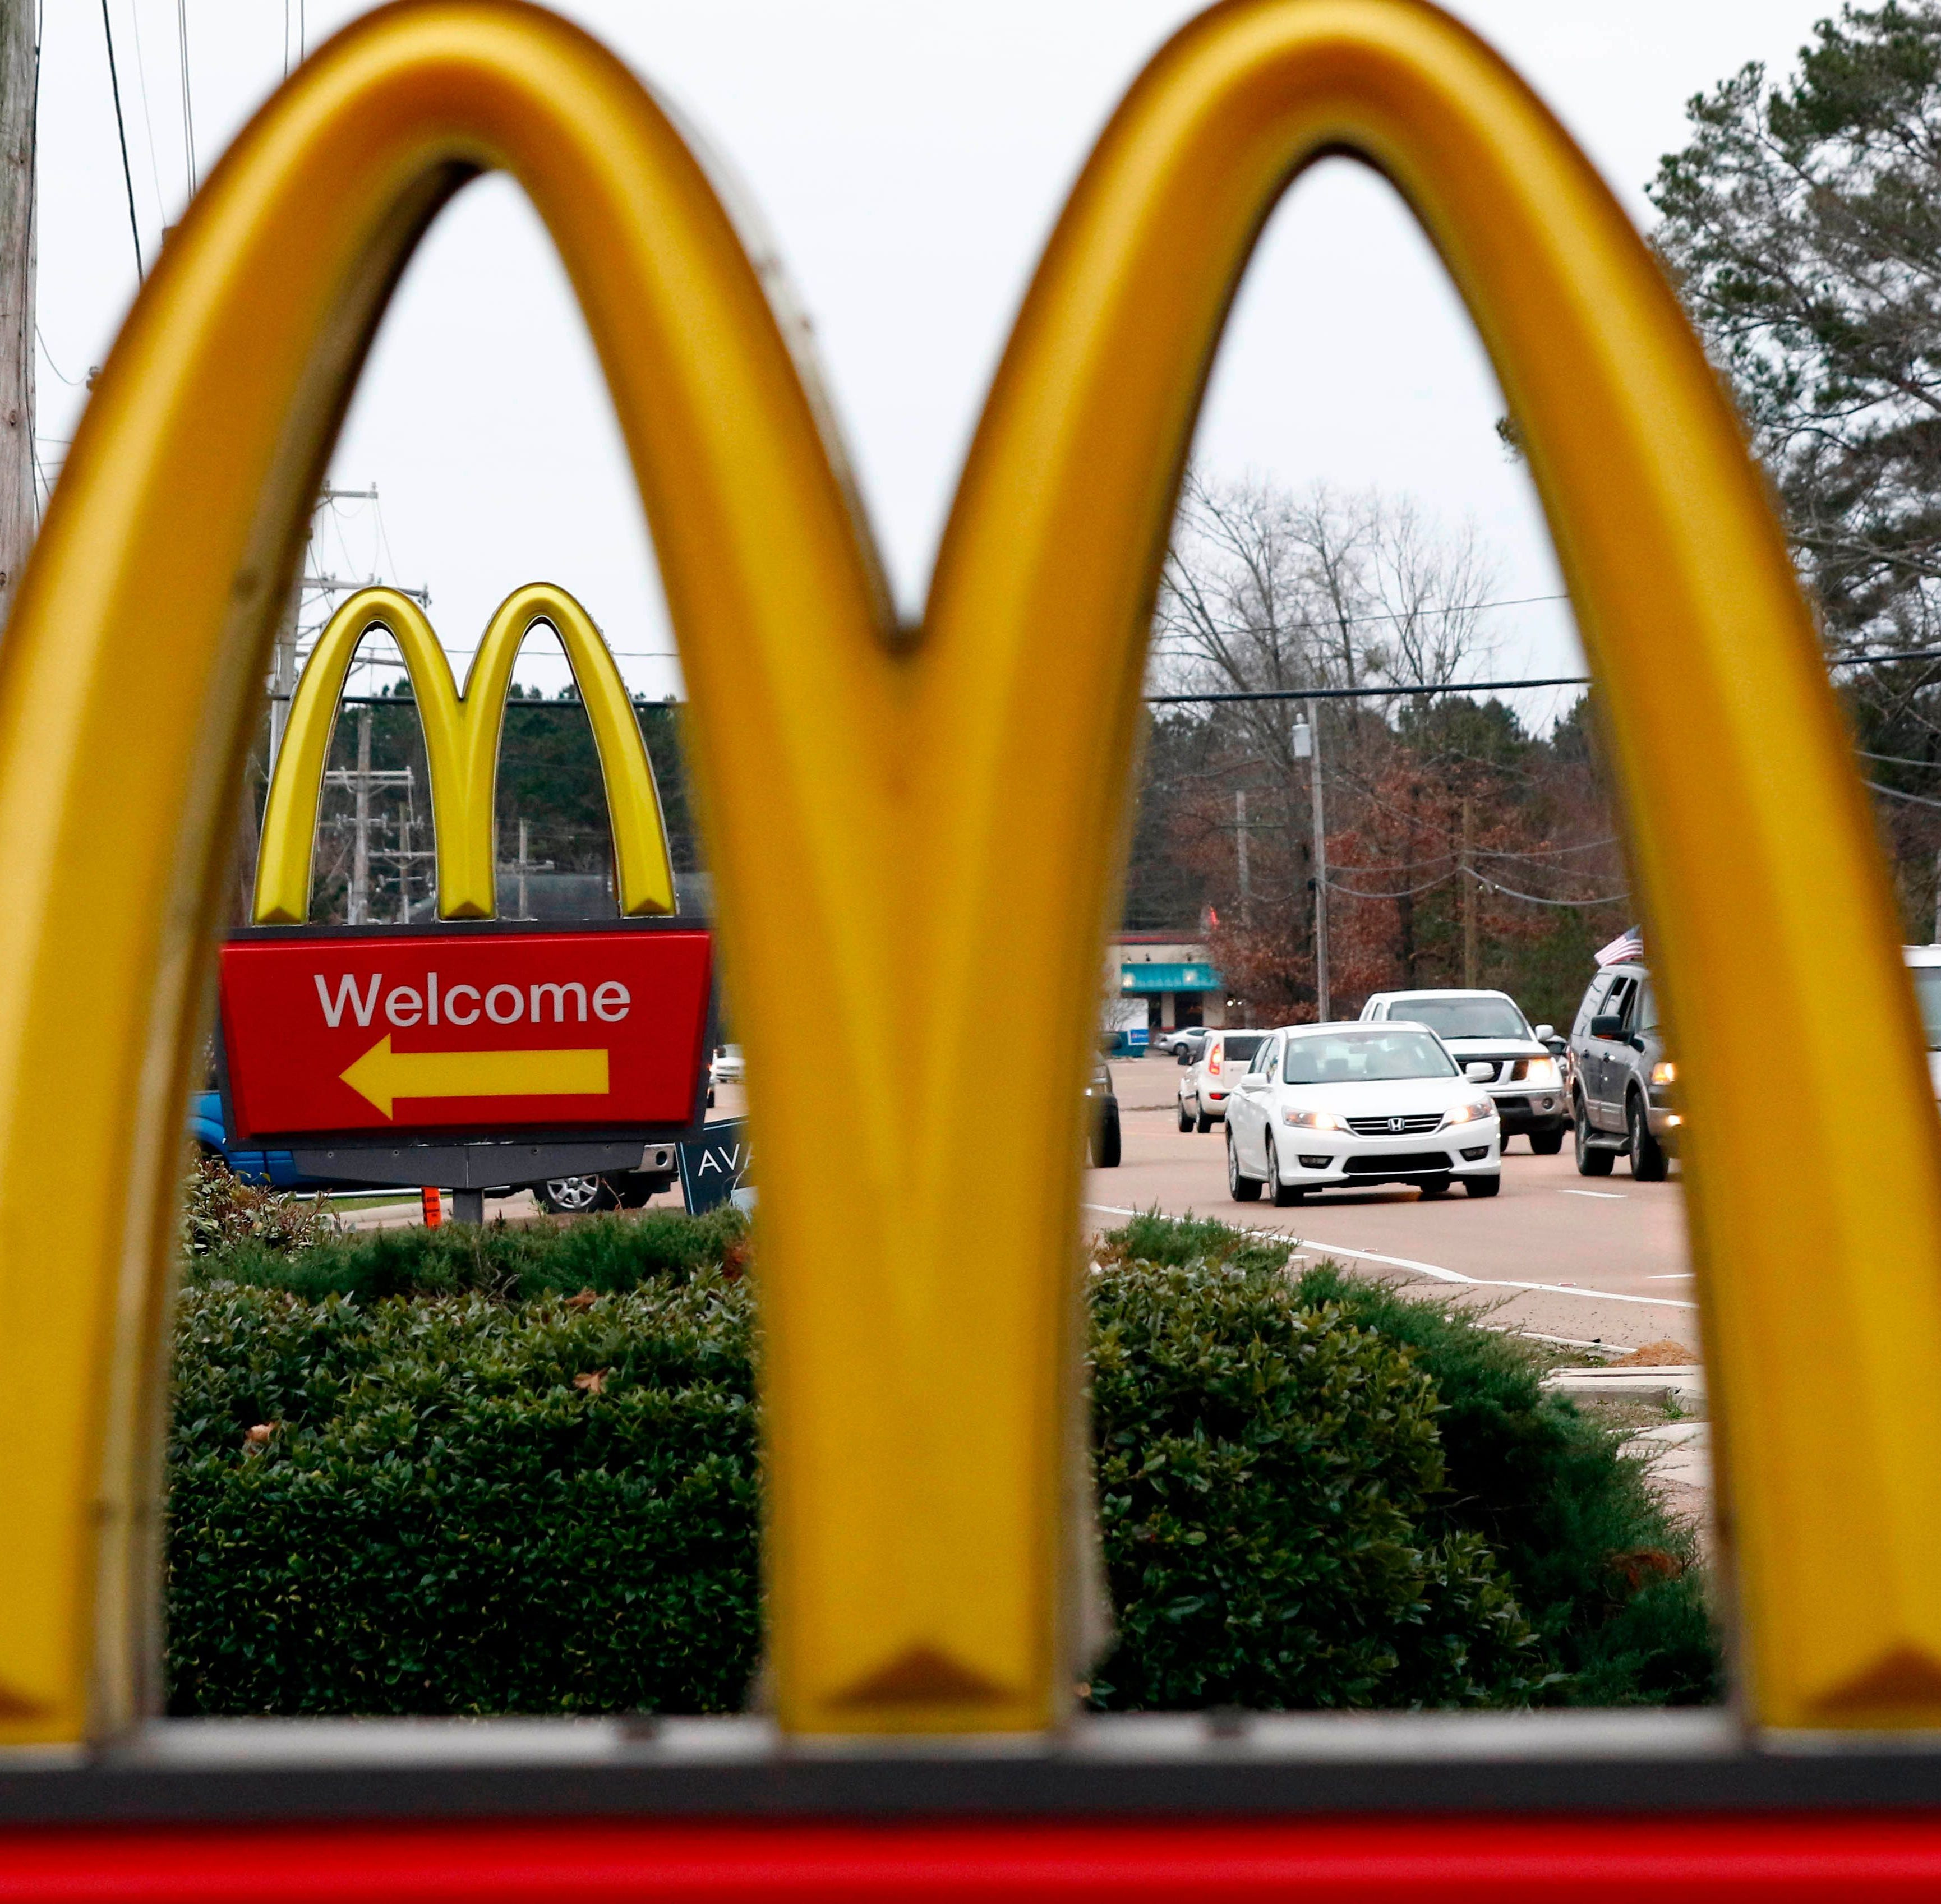 Manager of Indiana McDonald's accused of taking photo of 10-year-old boy in bathroom